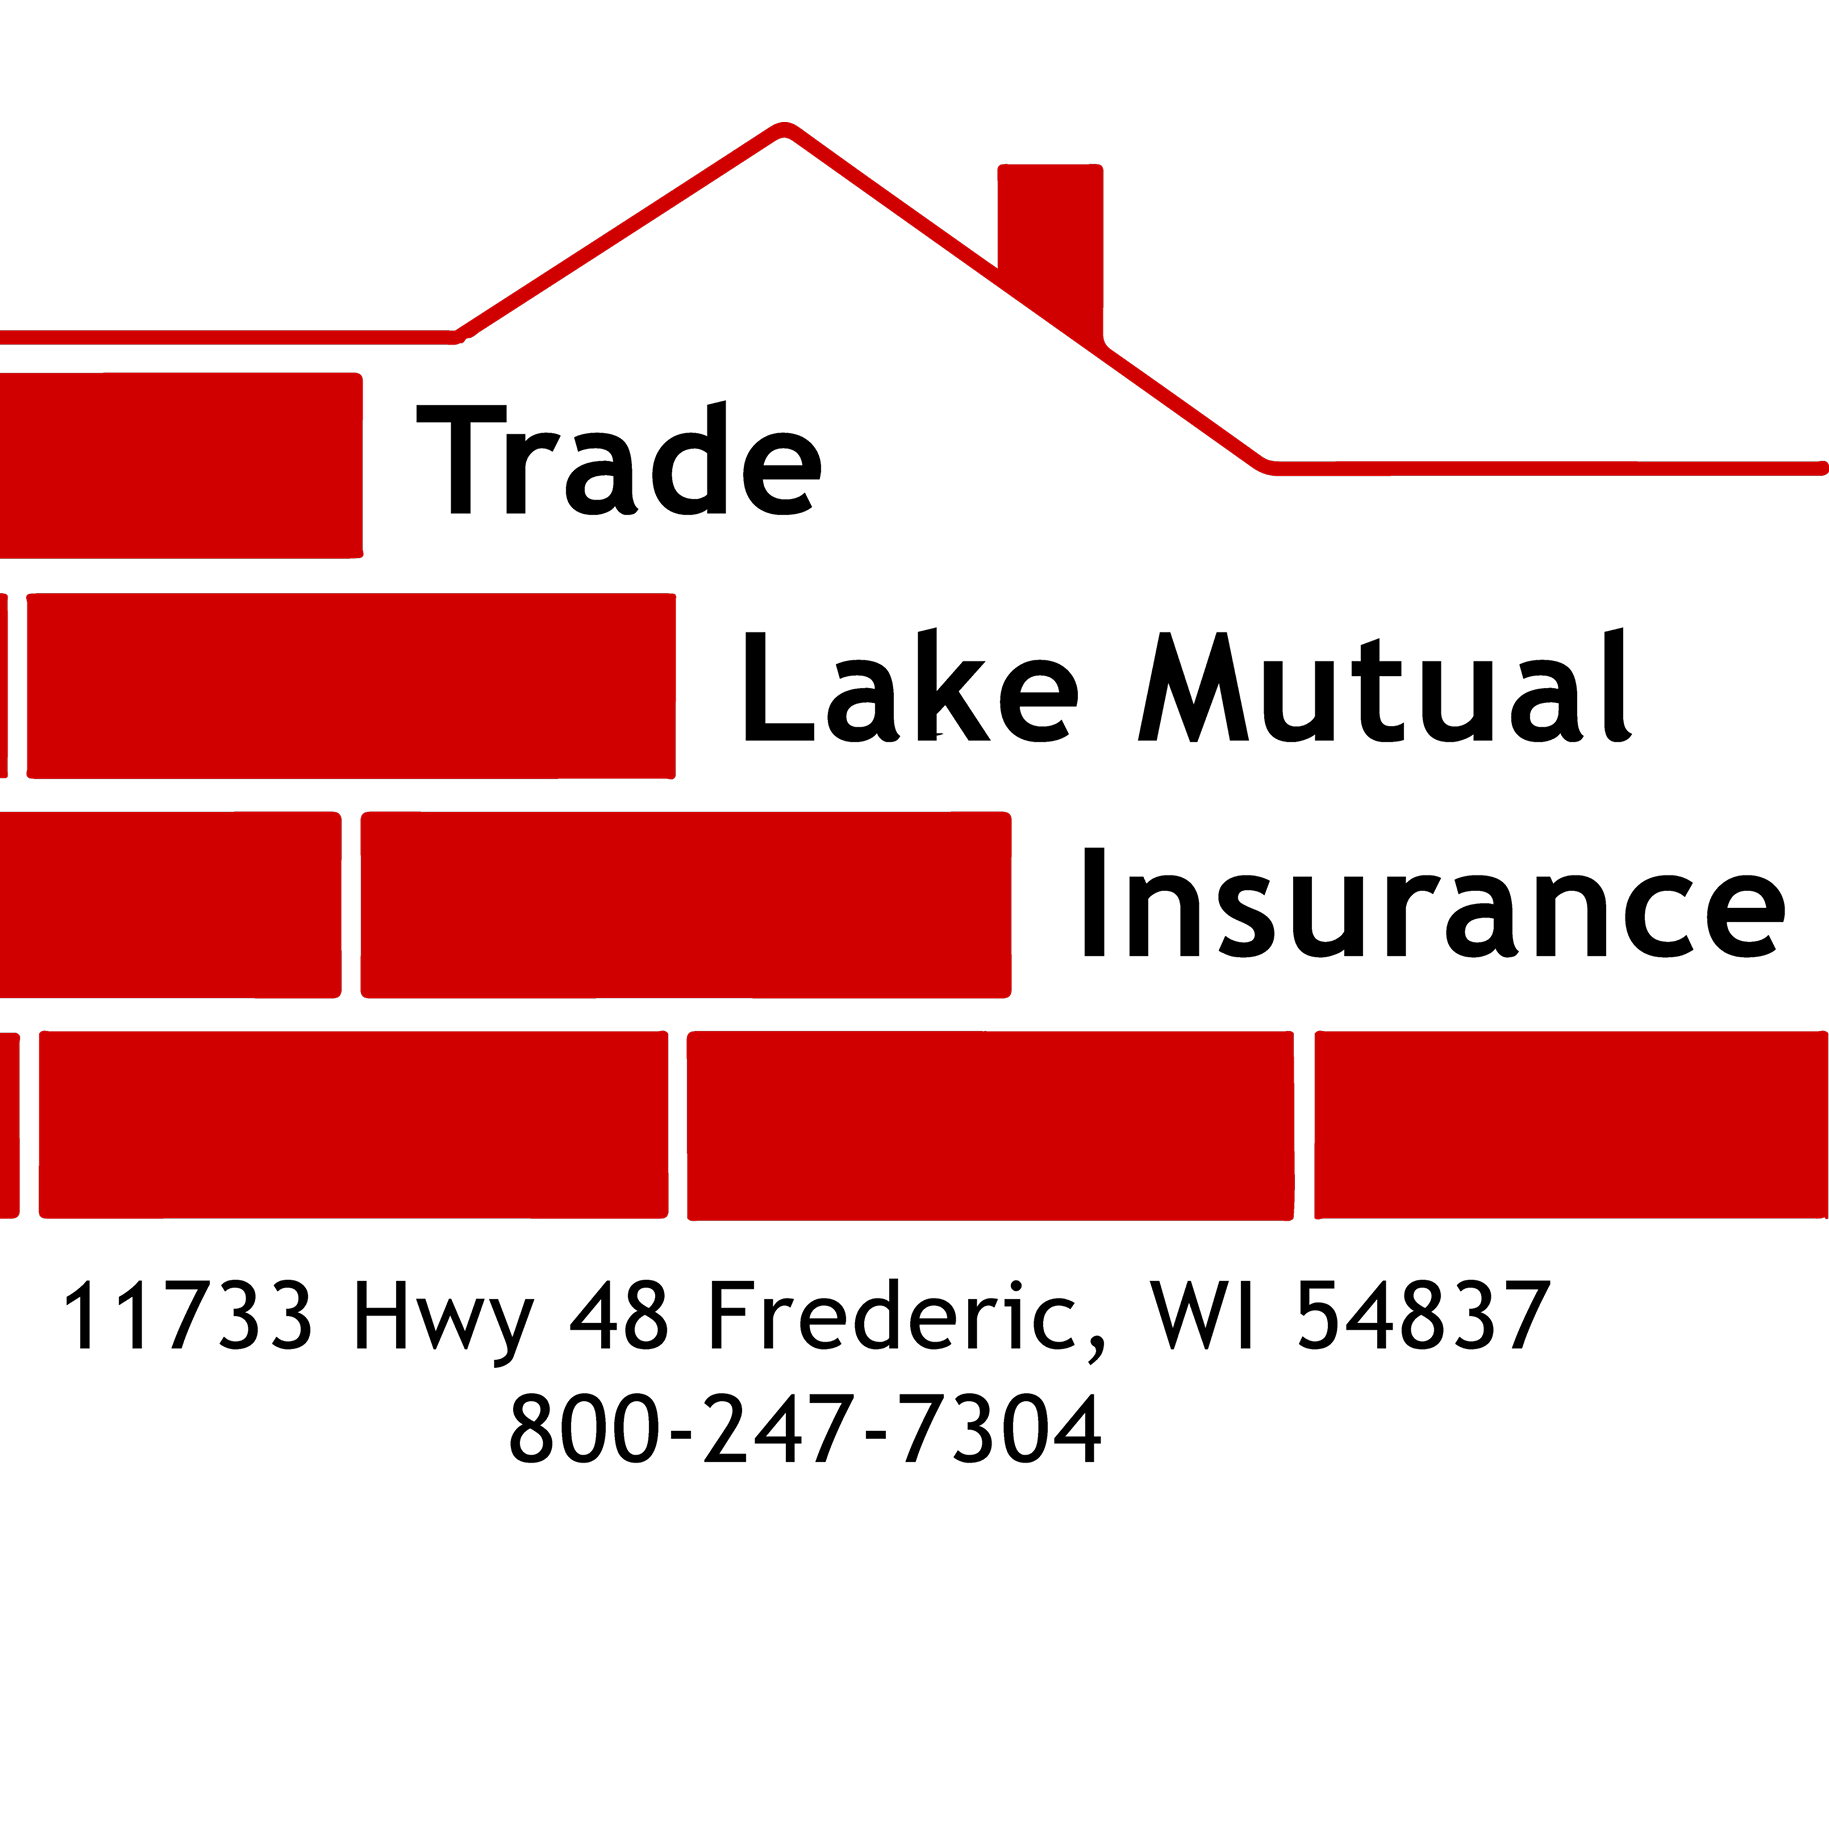 Trade Lake Mutual Insurance Company - Frederic, WI - Insurance Agents